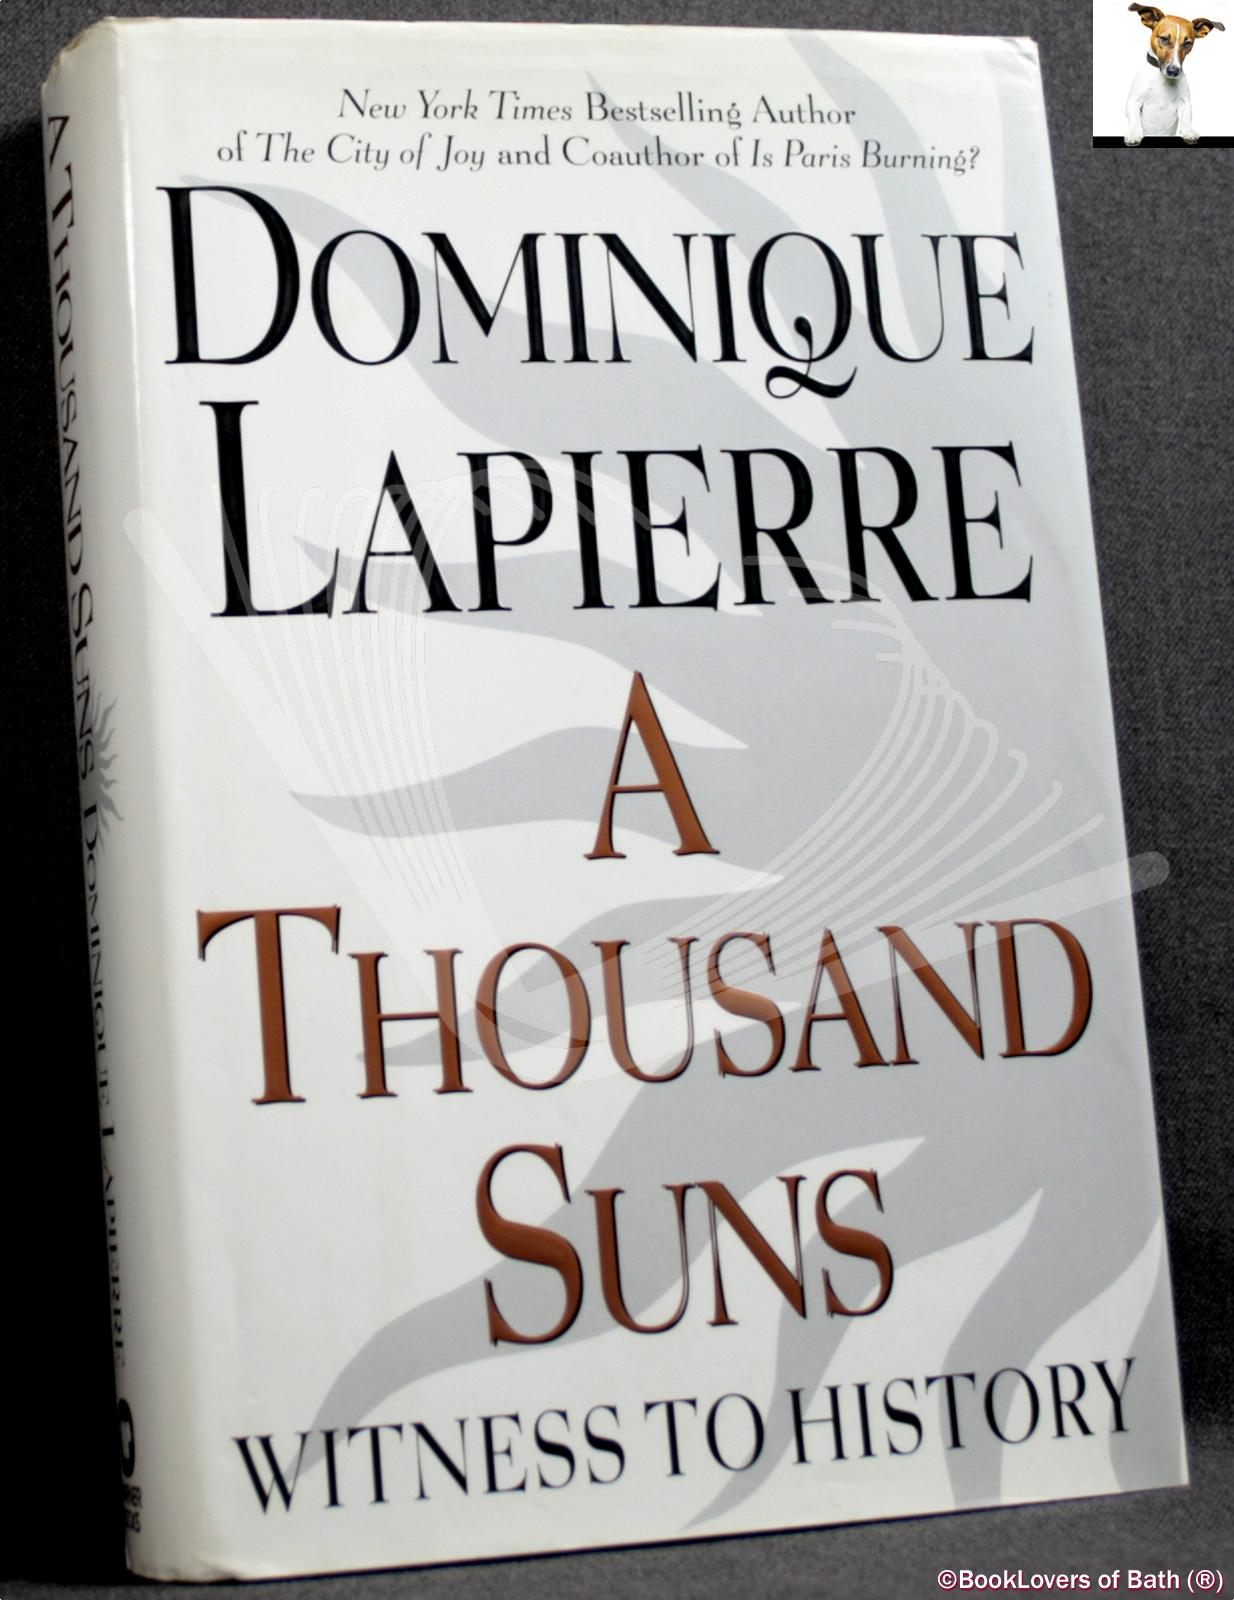 A Thousand Suns: Witness to History - Dominique Lapierre